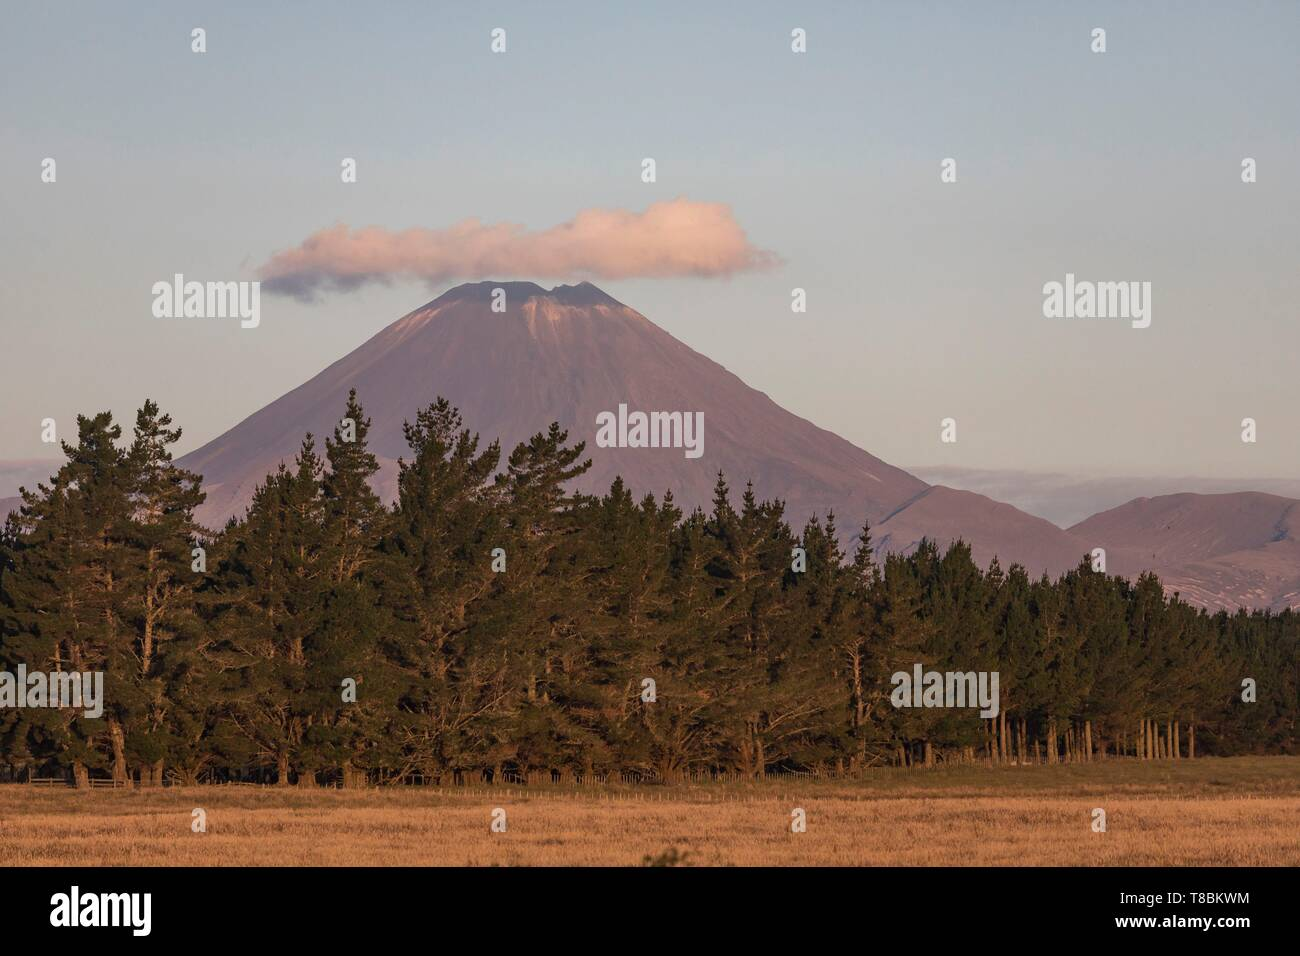 New Zealand, North Island, Waikato region, Tongariro National Park, labelled Unesco World Heritage Site, mount Ngauruhoe 2291 m - Stock Image